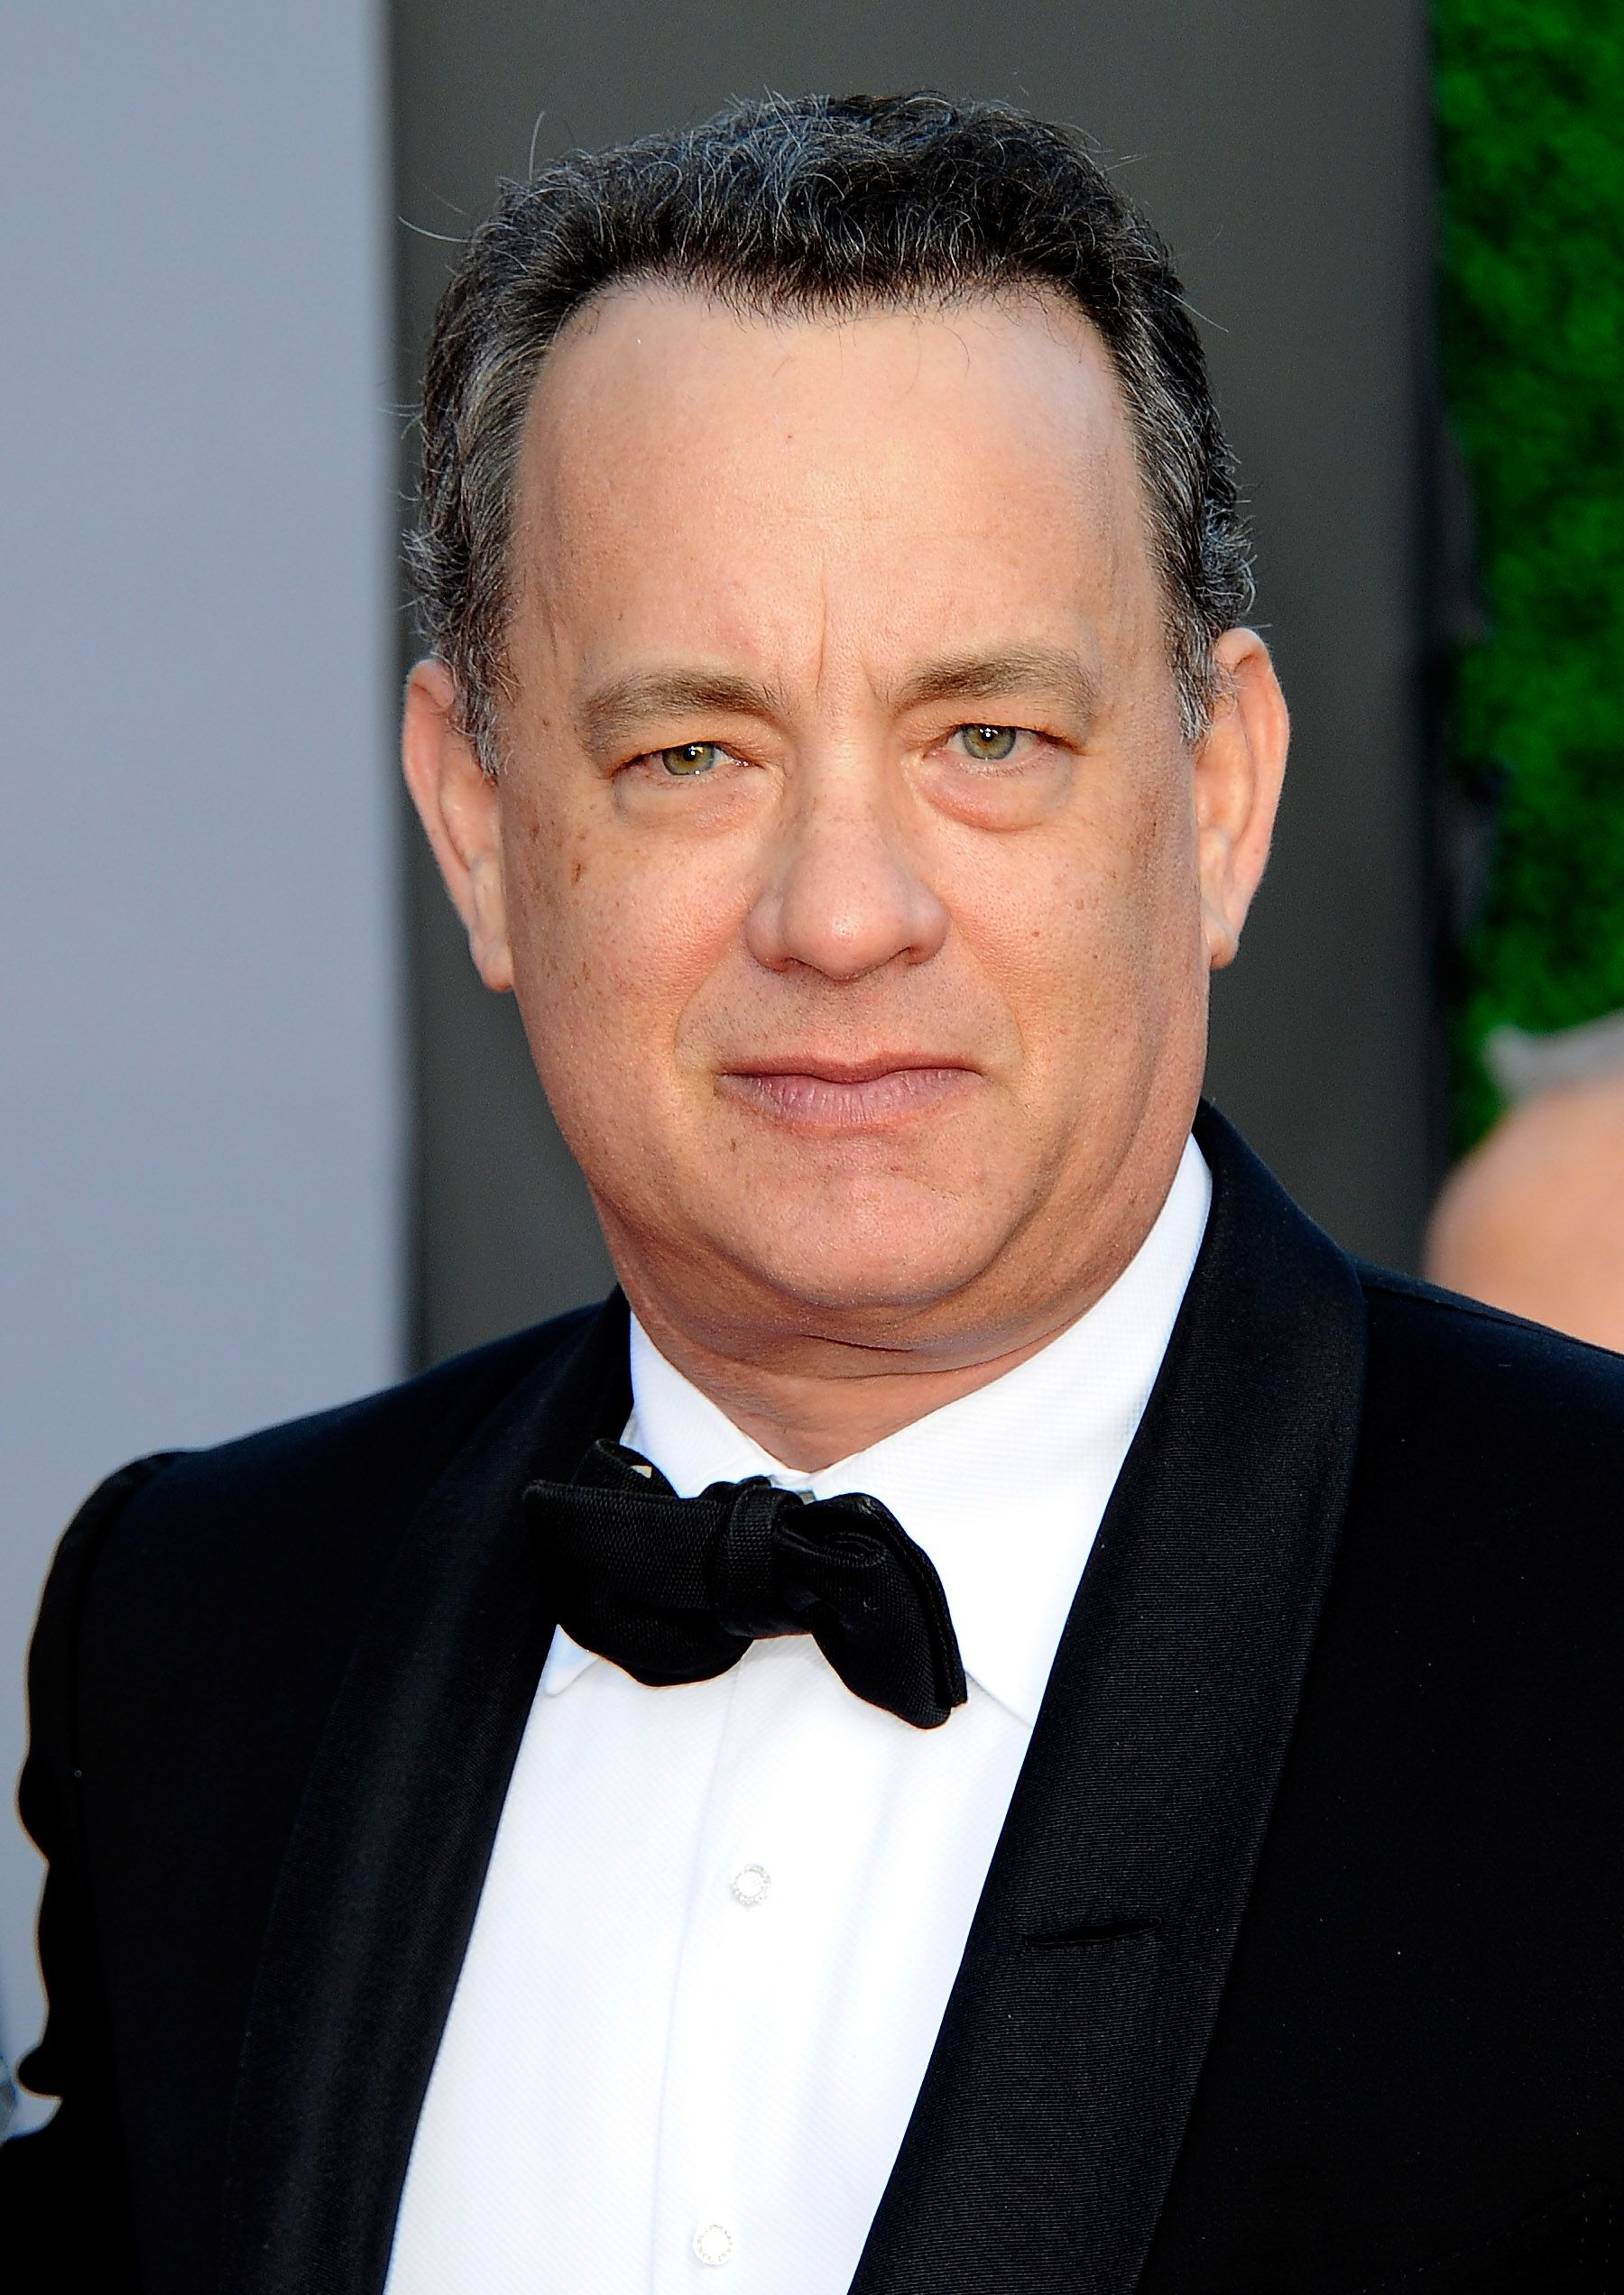 Tom Hanks at at the BAFTA Brits on July 9, 2011 in L.A | Photo: Getty Images